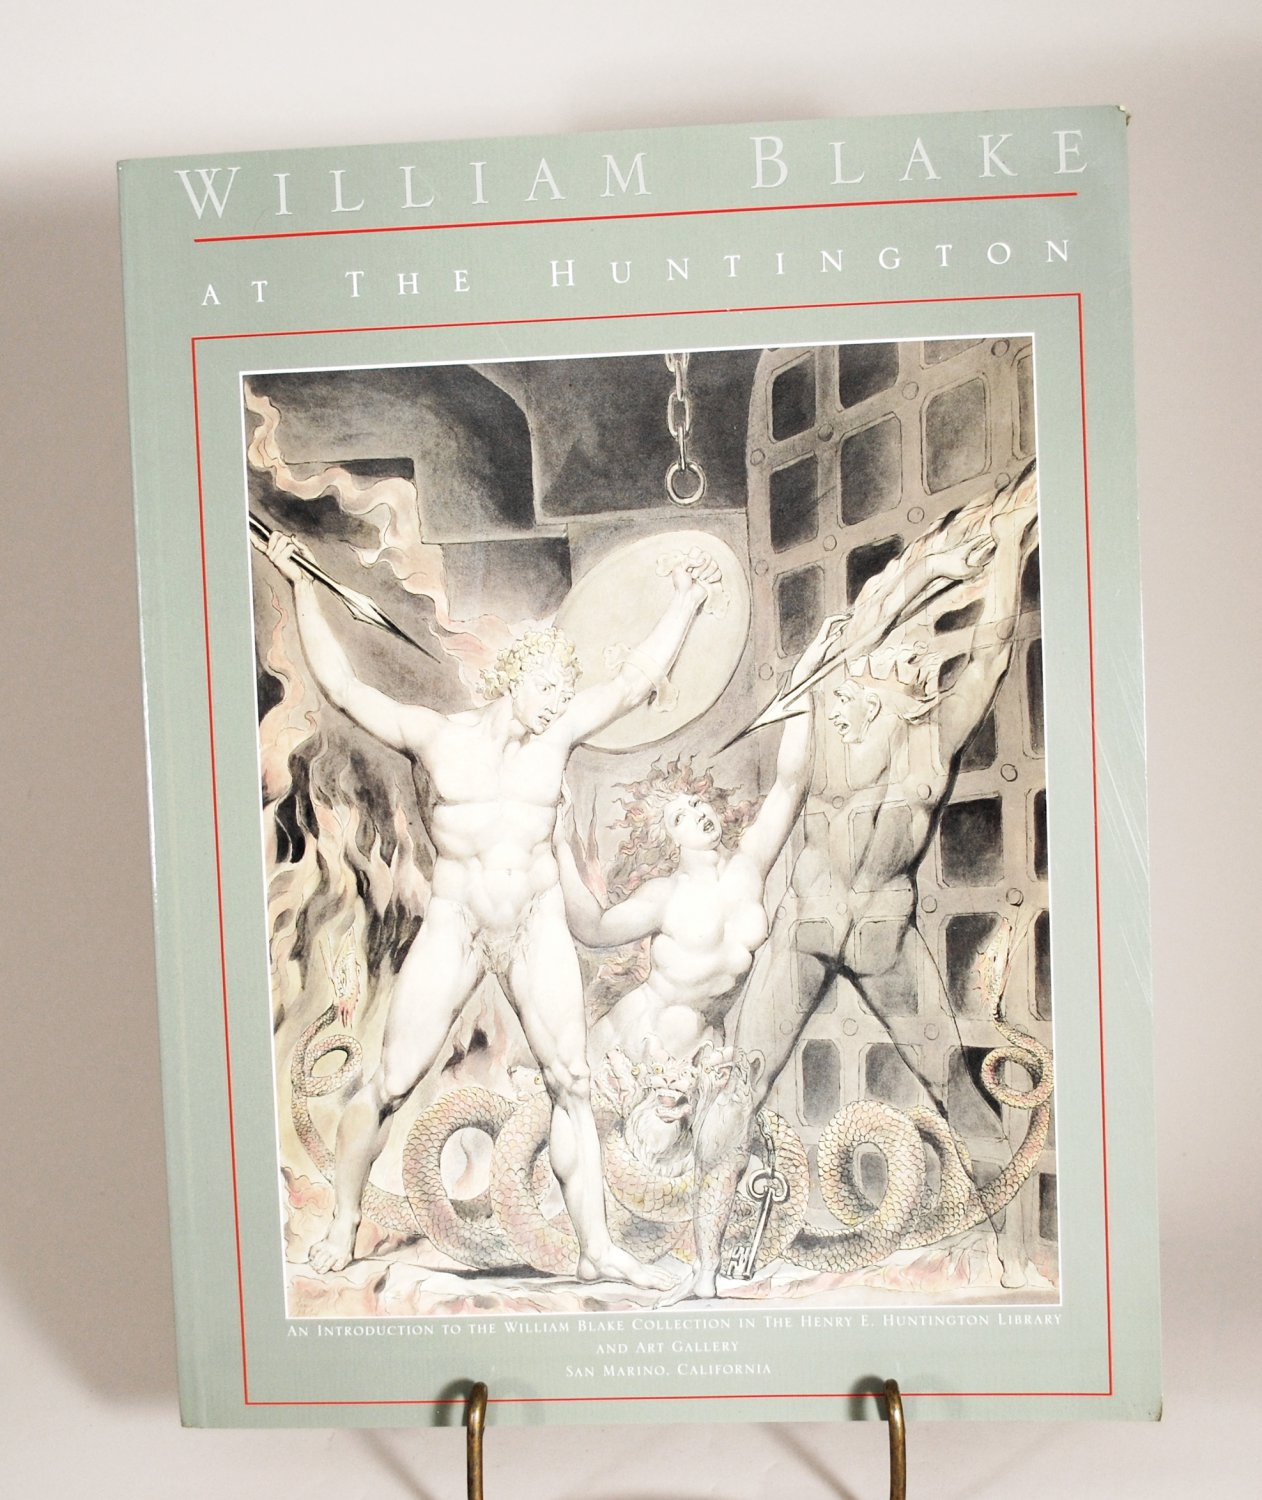 William Blake At The Huntington by Robert N. Essick Paperback 1994 Edition